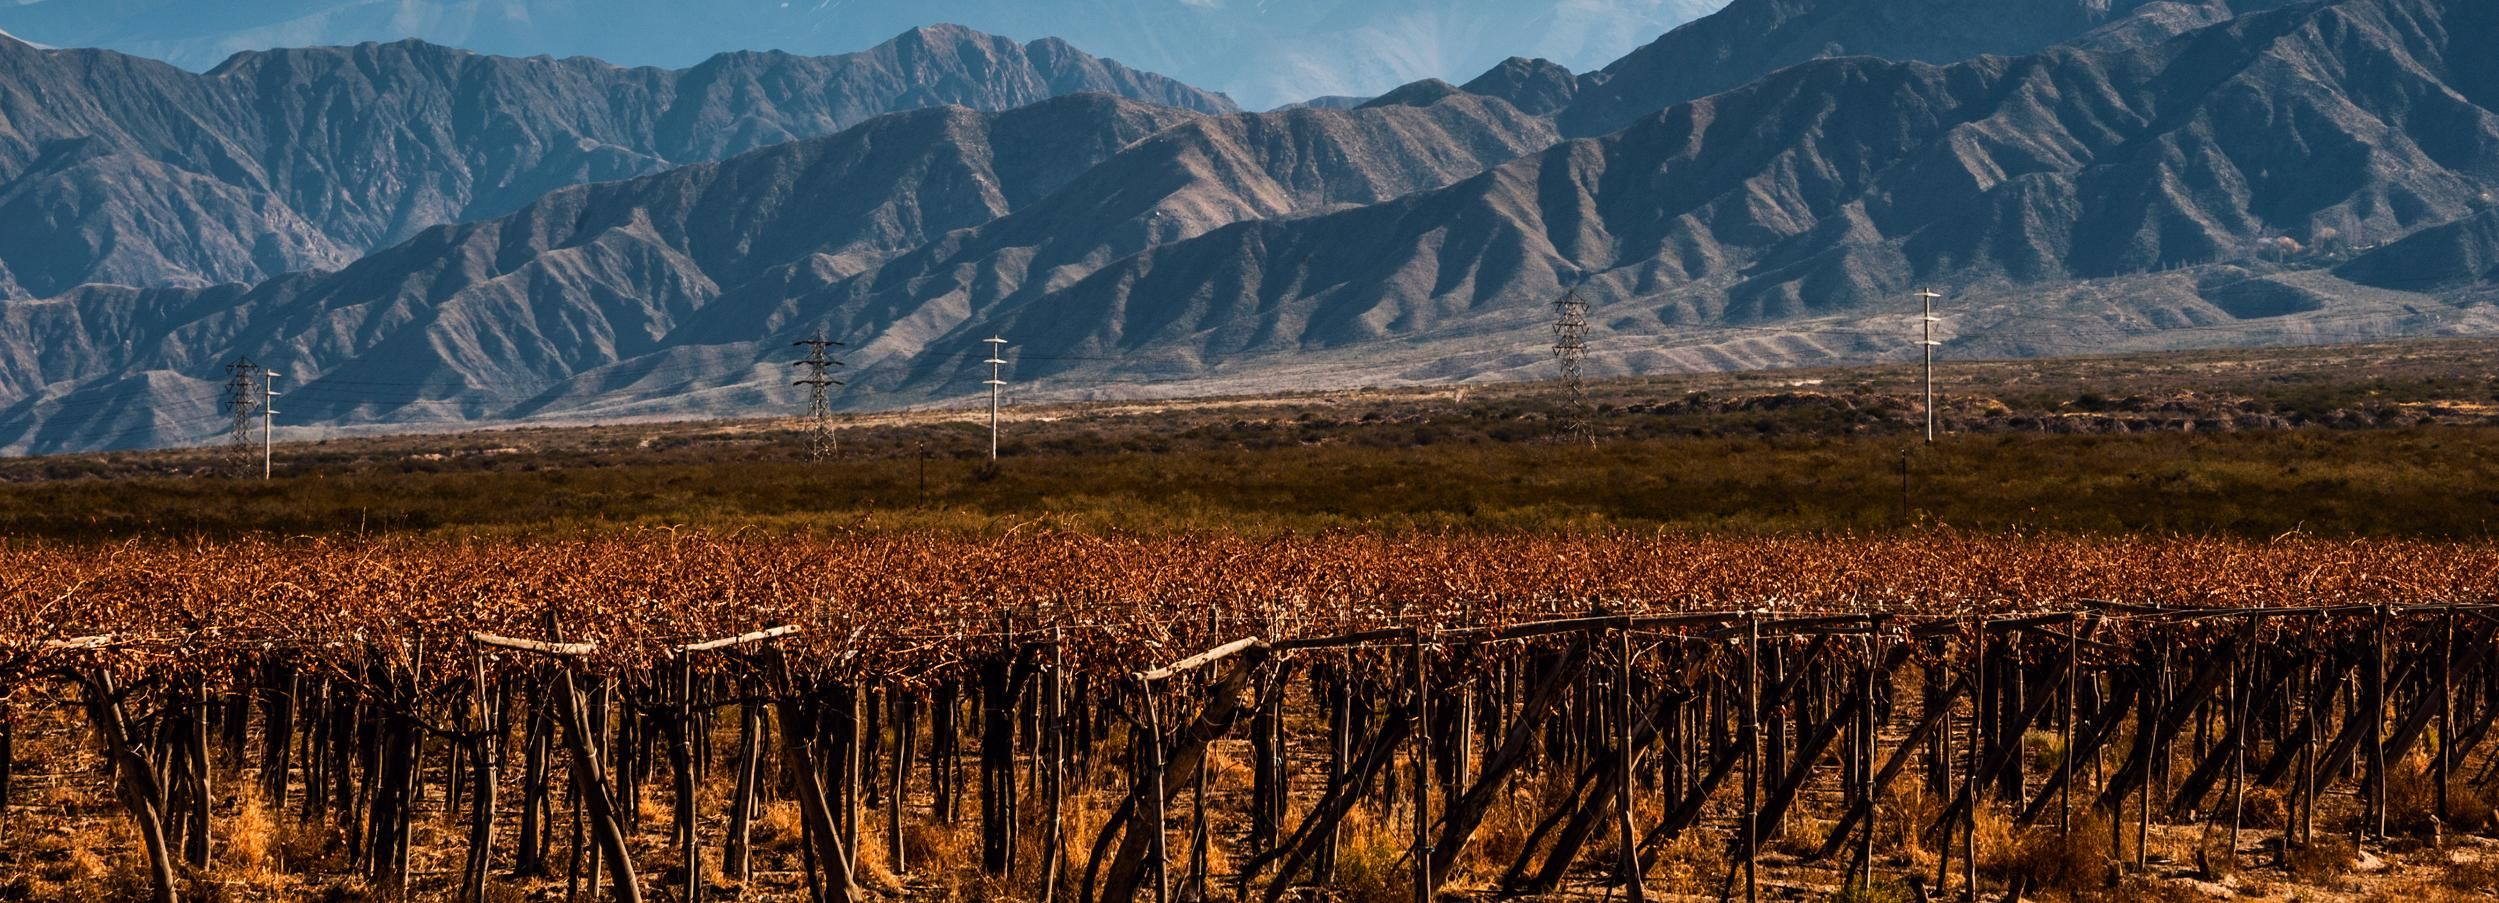 Mendoza: Full Day Wine Tour with 3 Course Lunch